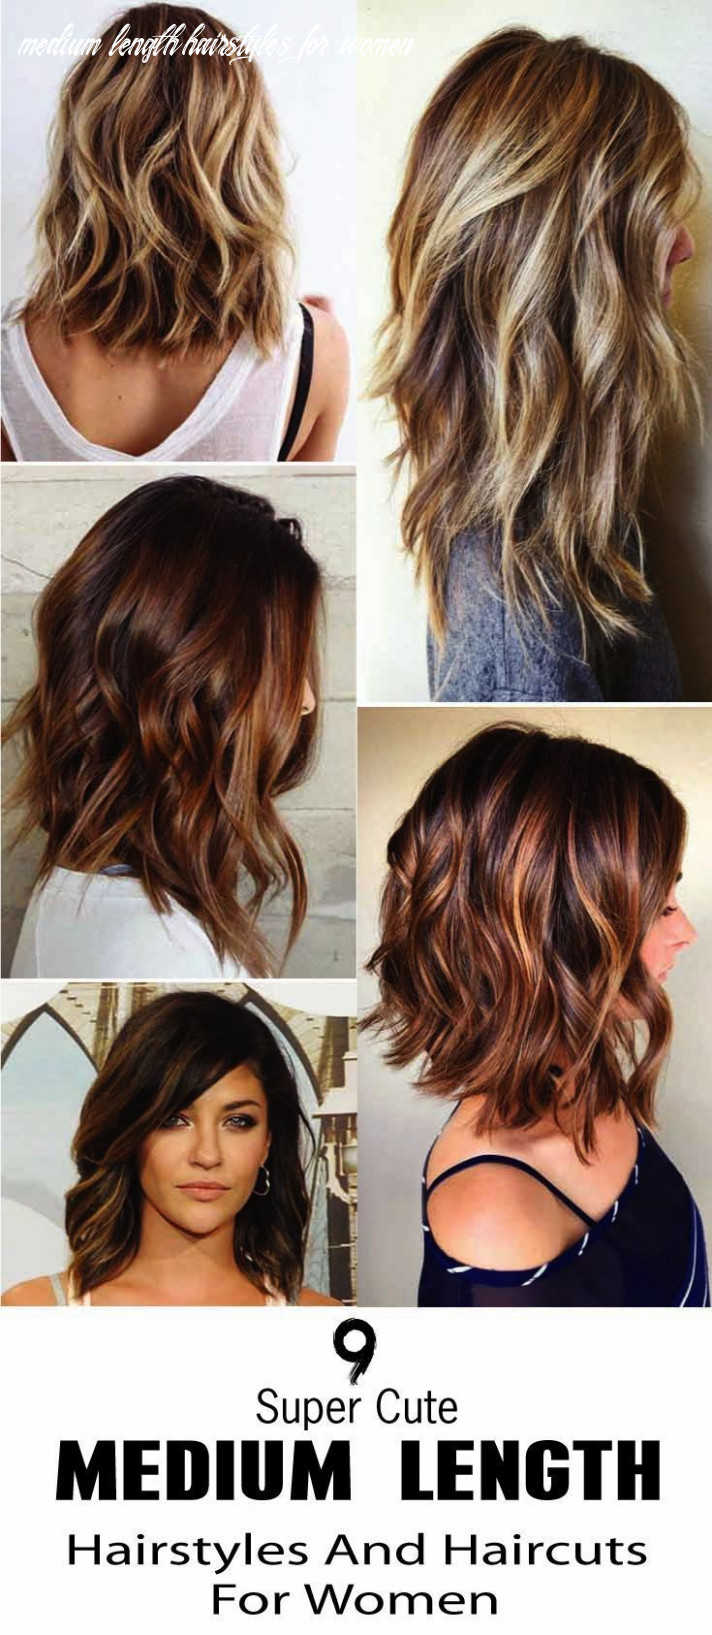 Pin on hairstyle medium length hairstyles for women